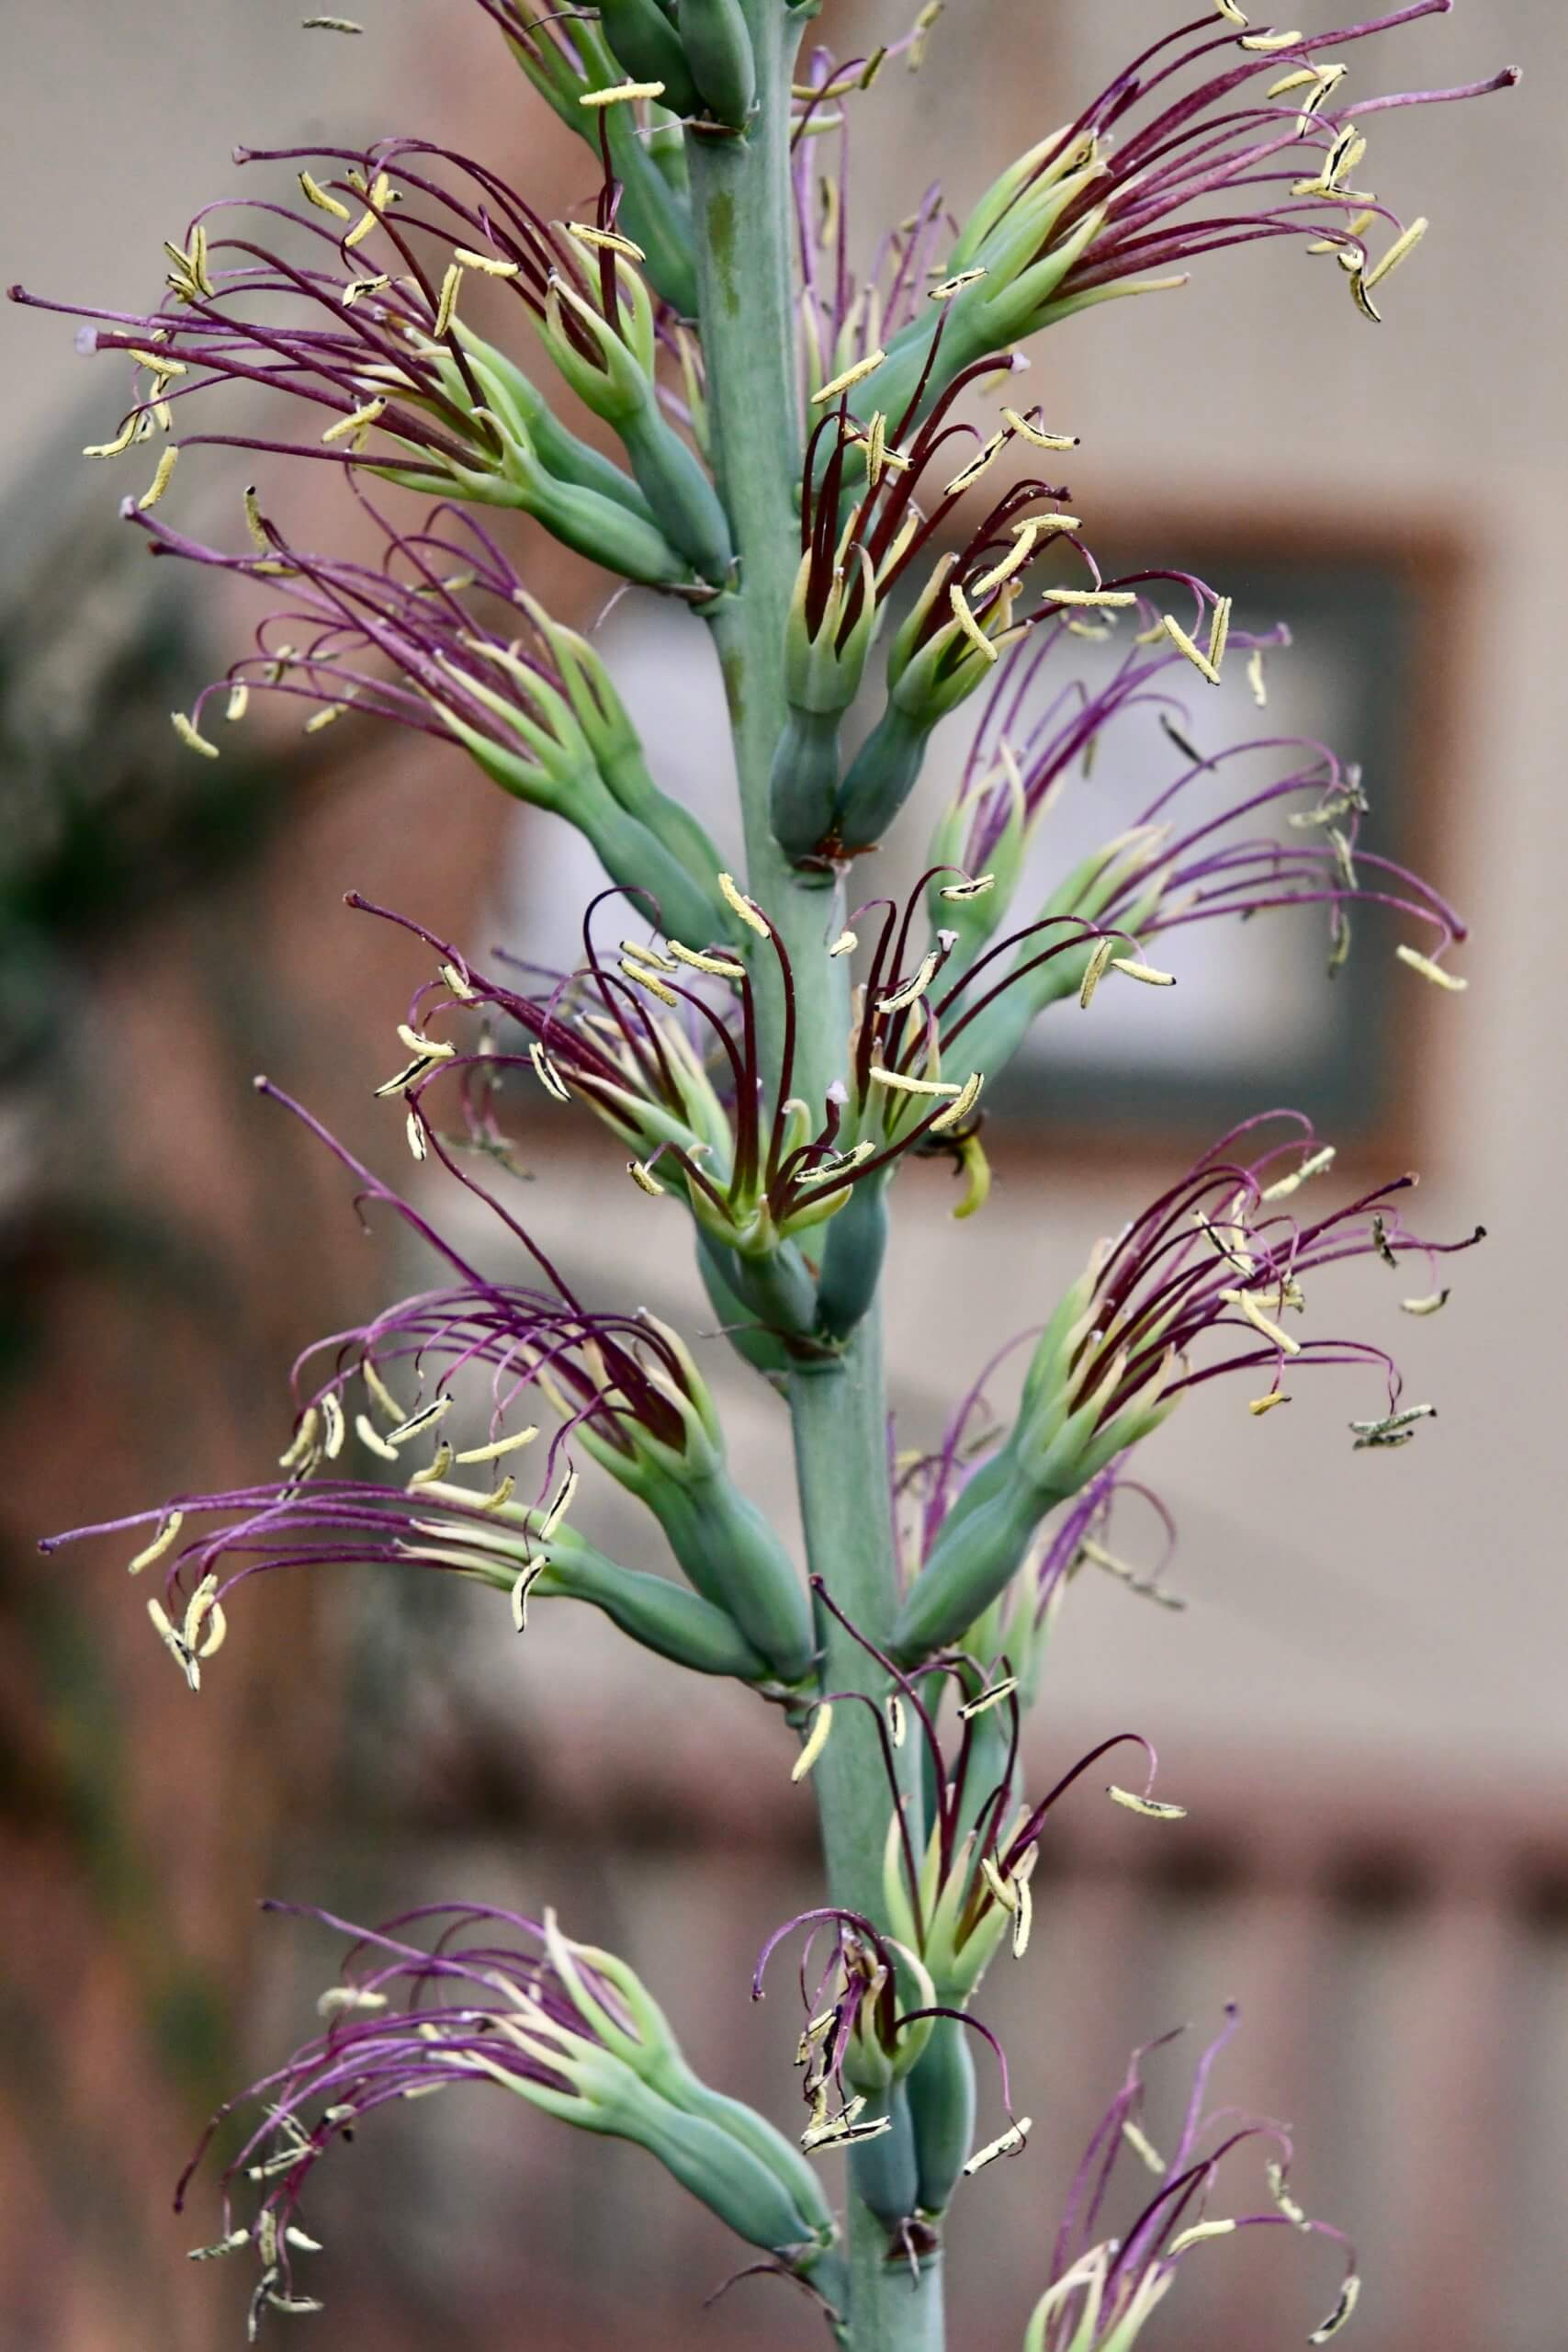 Deep purples and lime greens make up this inflorescence from Managave 'Spotify' in the conservatory's desert garden.